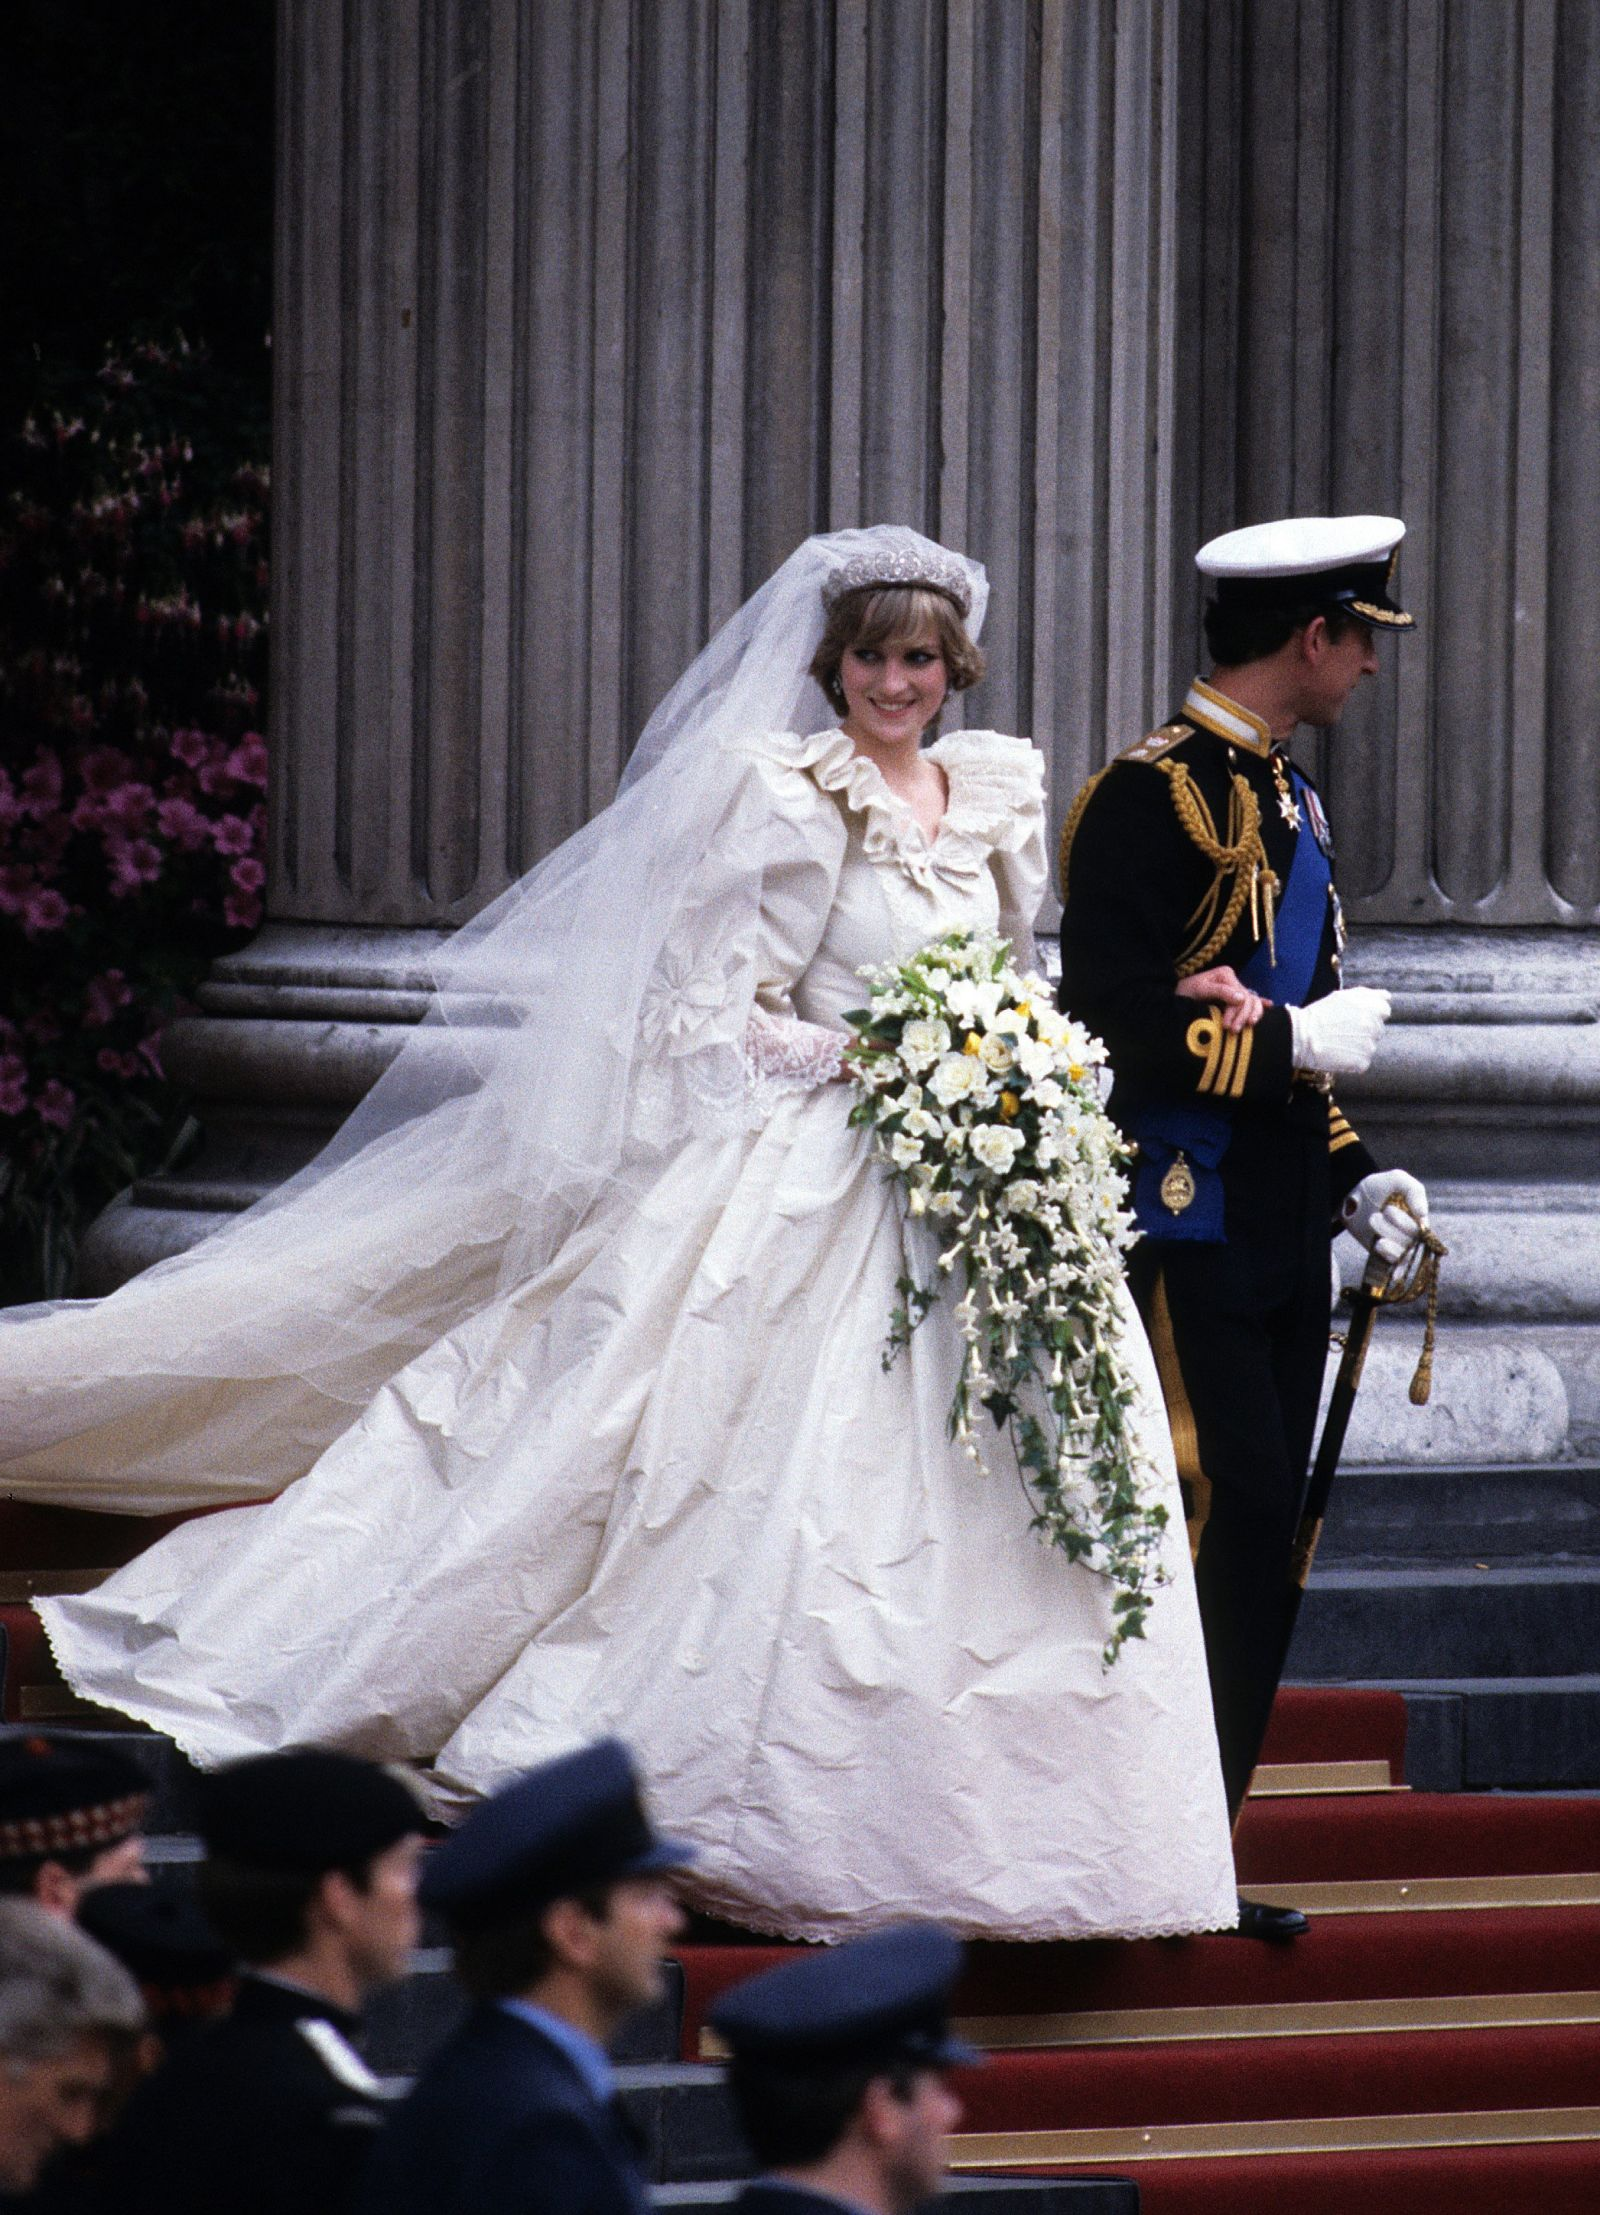 Oscar winning celebrity wedding dresses - 9 Of The Most Expensive Celebrity Wedding Dresses Ever Priciest Bridal Gowns Of All Time